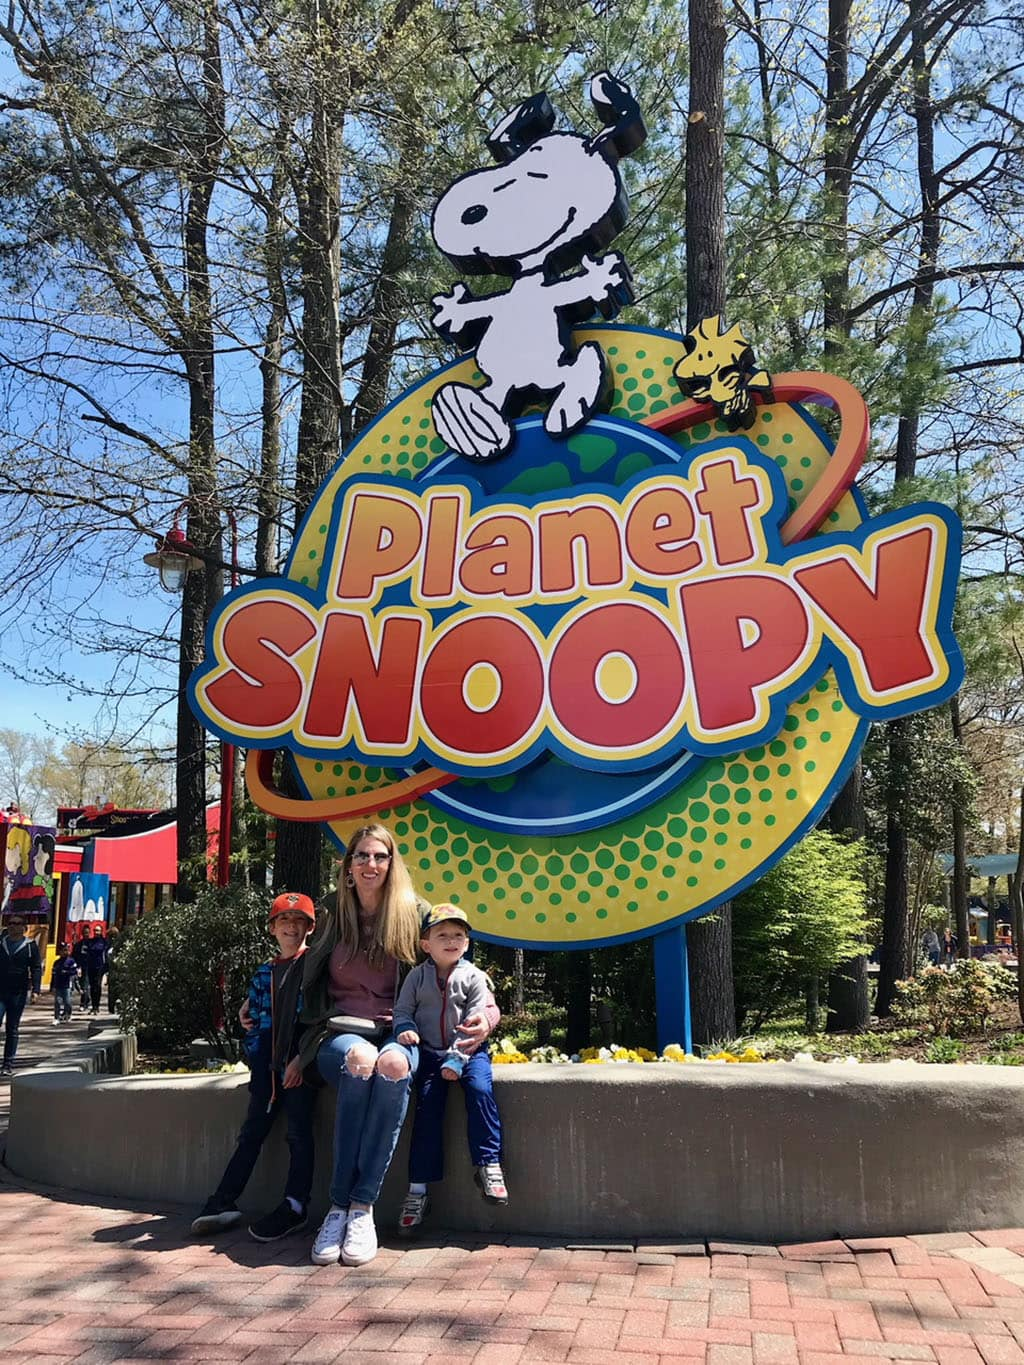 Planet Snoopy at Kings Dominion